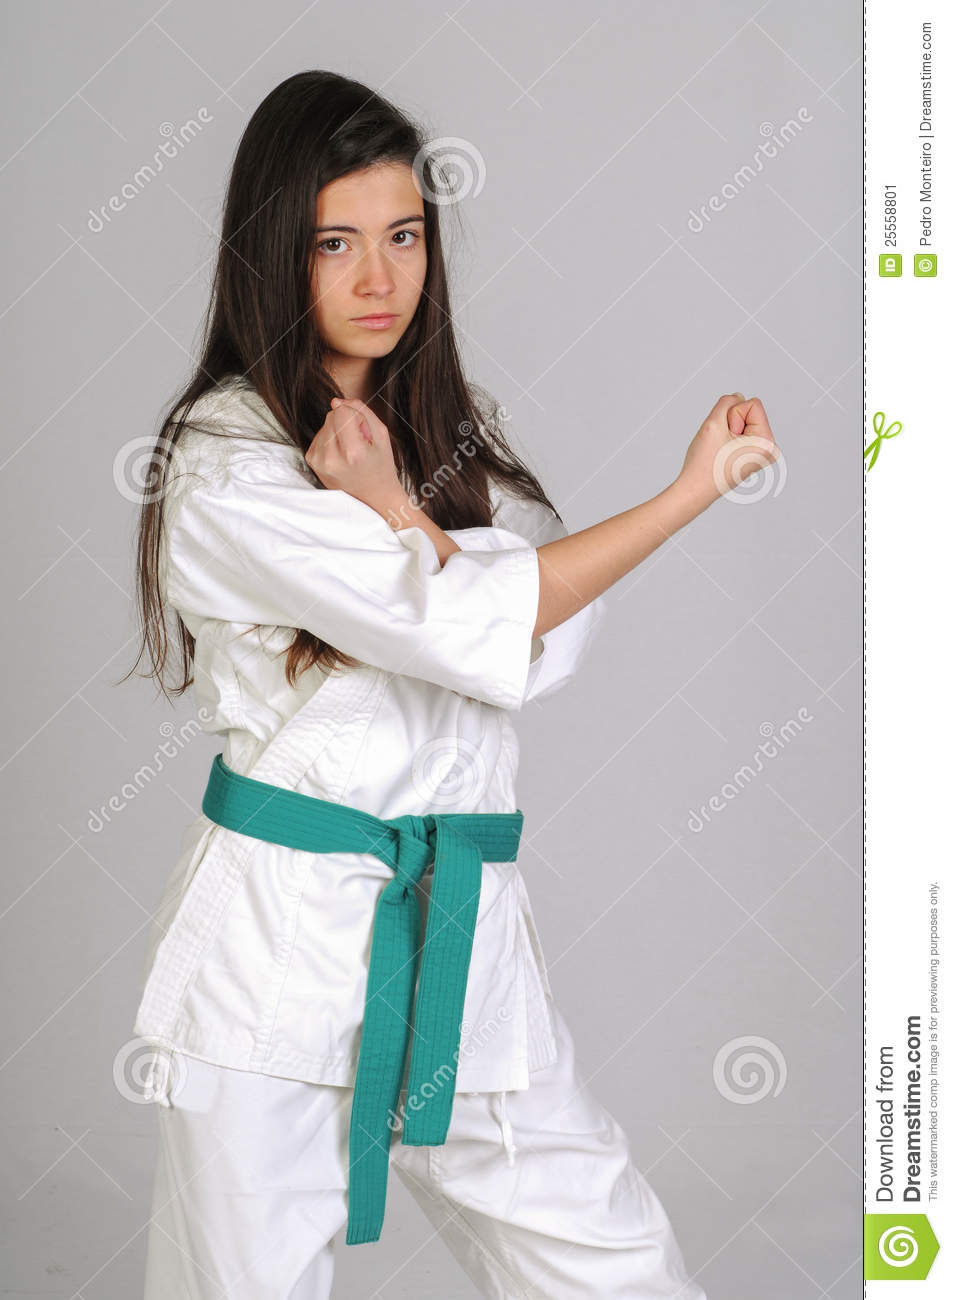 Dating a girl from martial arts